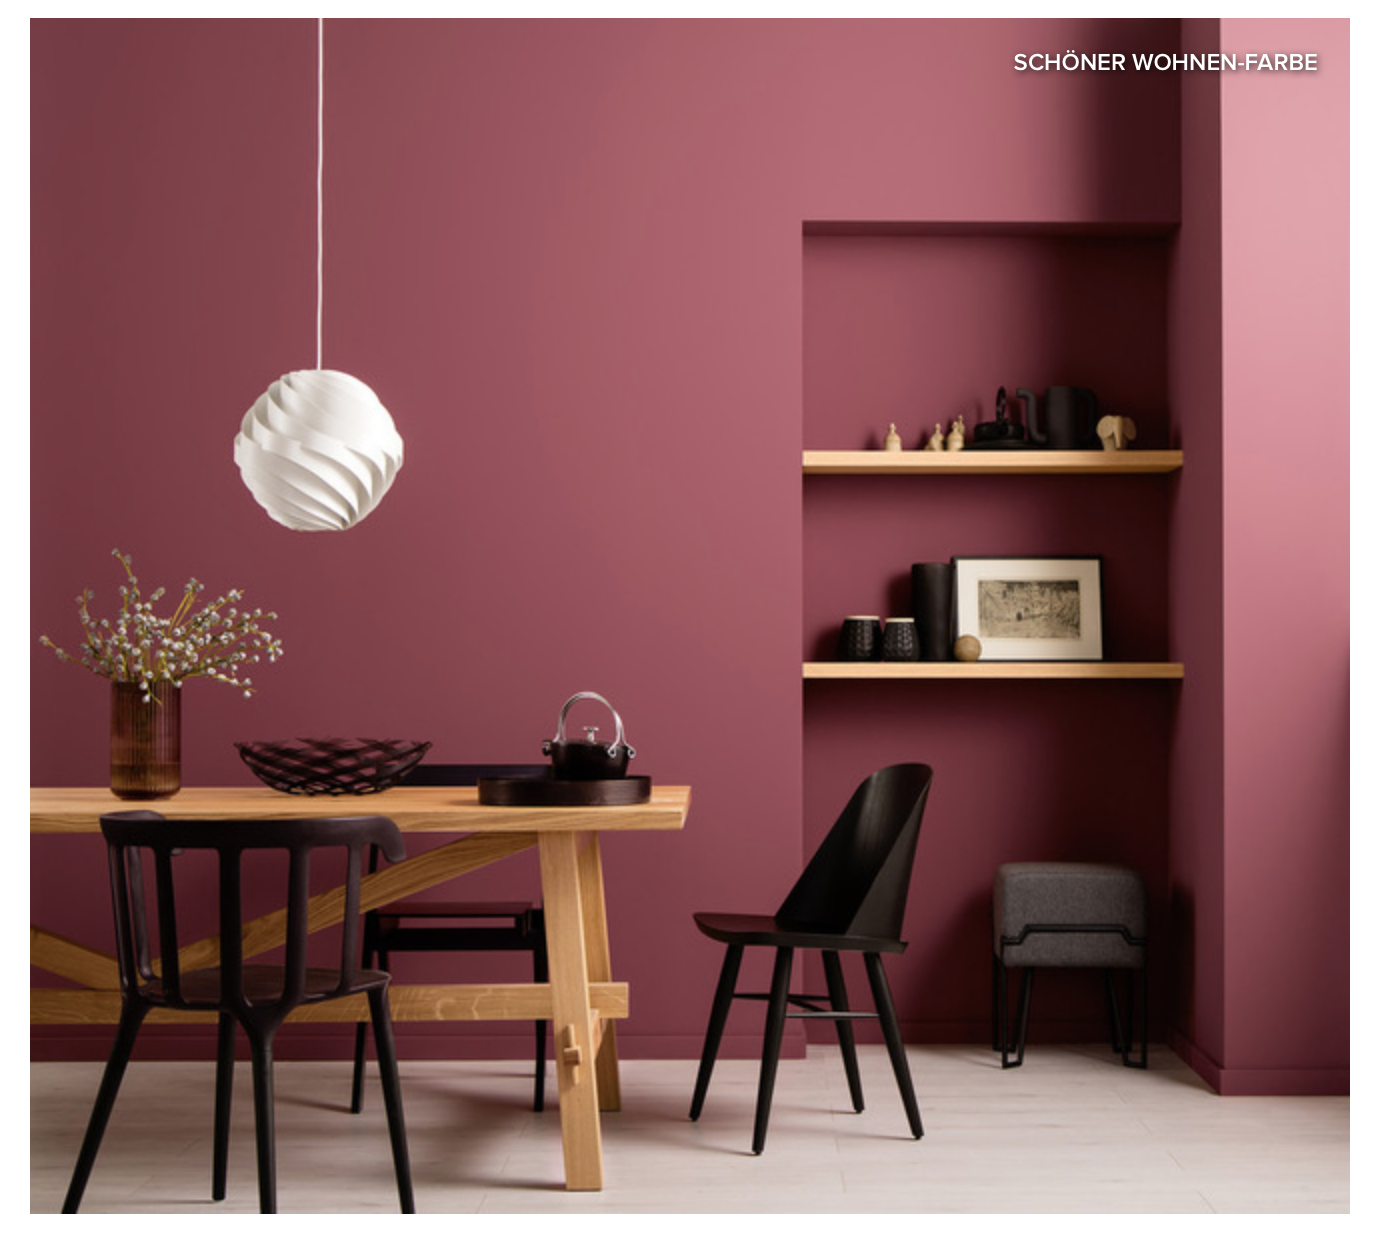 Etonnant Article From Houzz About The Colors To Paint Every Room: Maroon/Pink For  Living